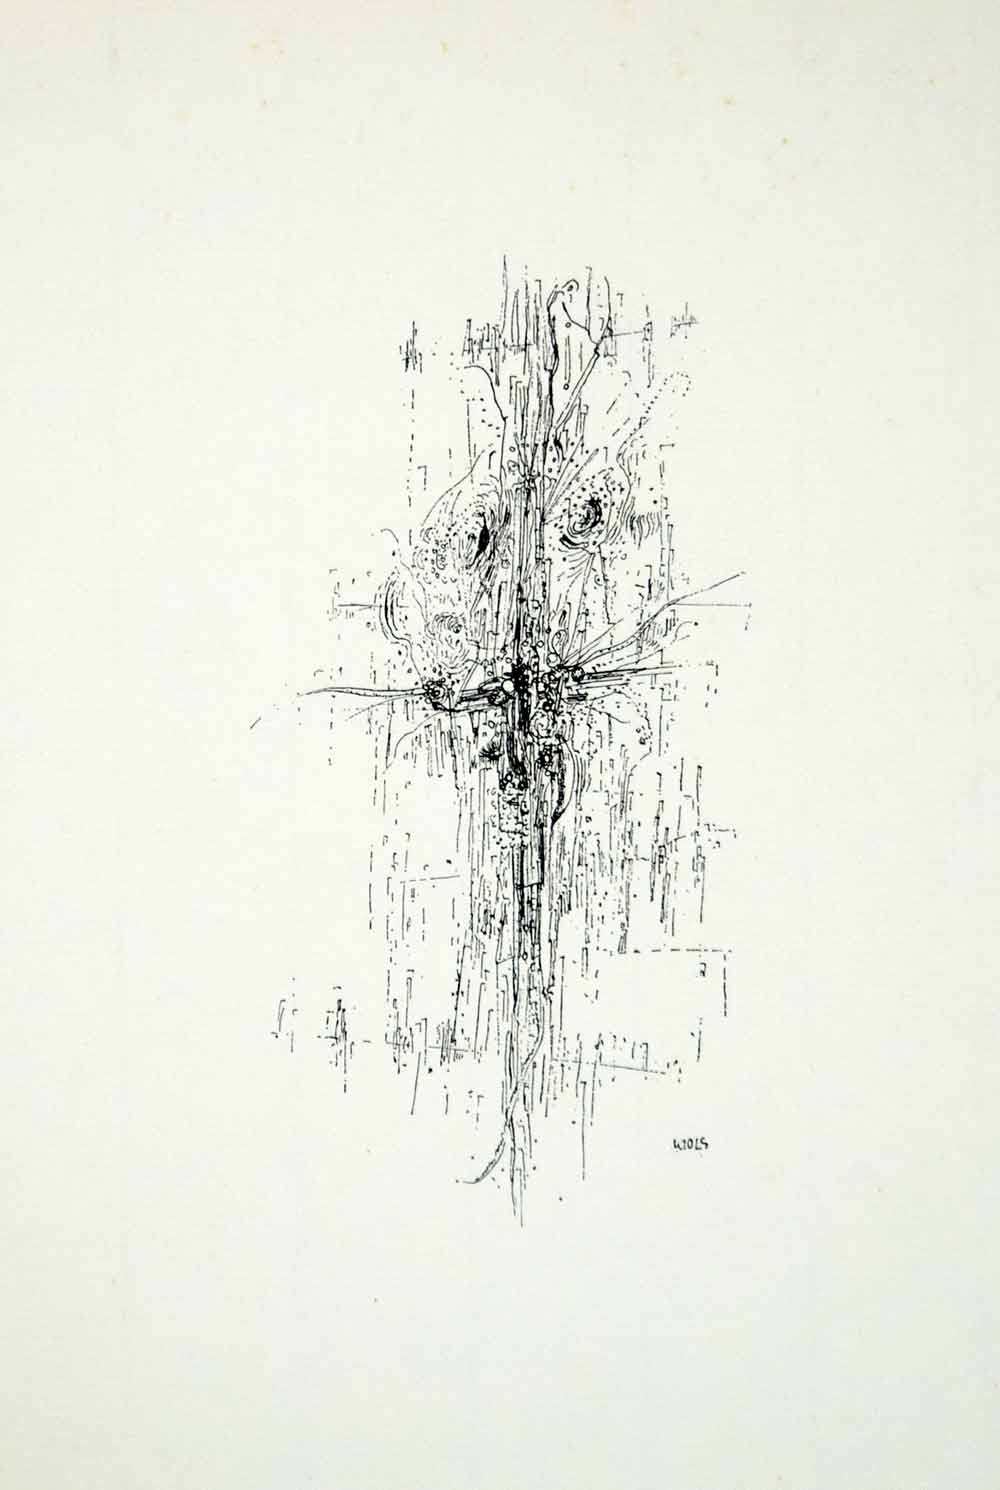 1965 Lithograph Wols Schulze Cross Eyes Croix Yeux Abstract Art Drawing Wol1